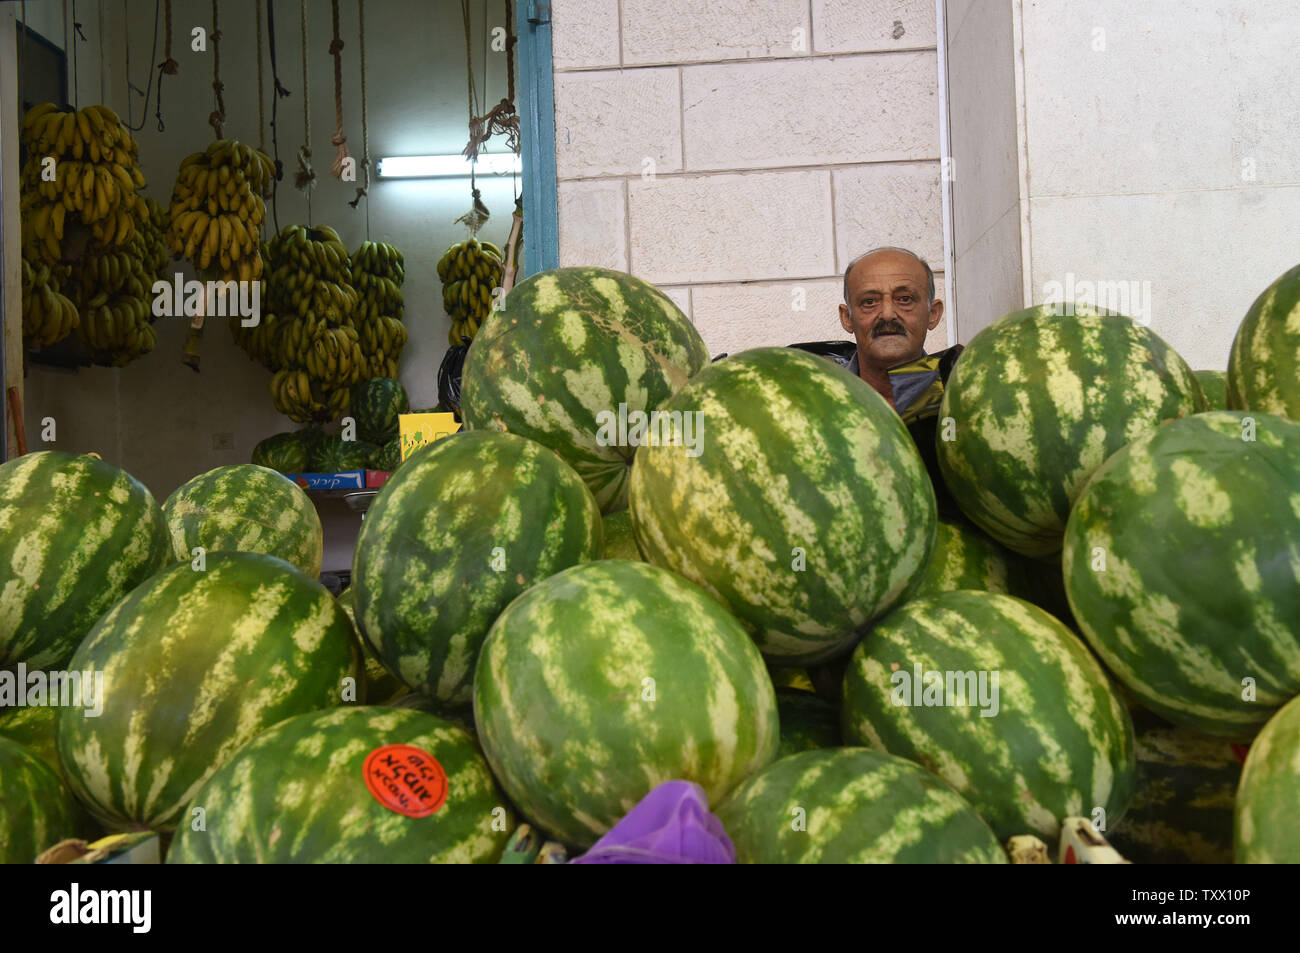 A Palestinian sells watermelons for the Islamic holiday of Eid al-Fitr, in the market in Bethlehem, West Bank, June 13, 2018. Muslims around the world will celebrate the three day holiday of  Eid al-Fitr ,which marks the end of the Muslim holy month of fasting Ramadan.  Photo by Debbie Hill/UPI - Stock Image